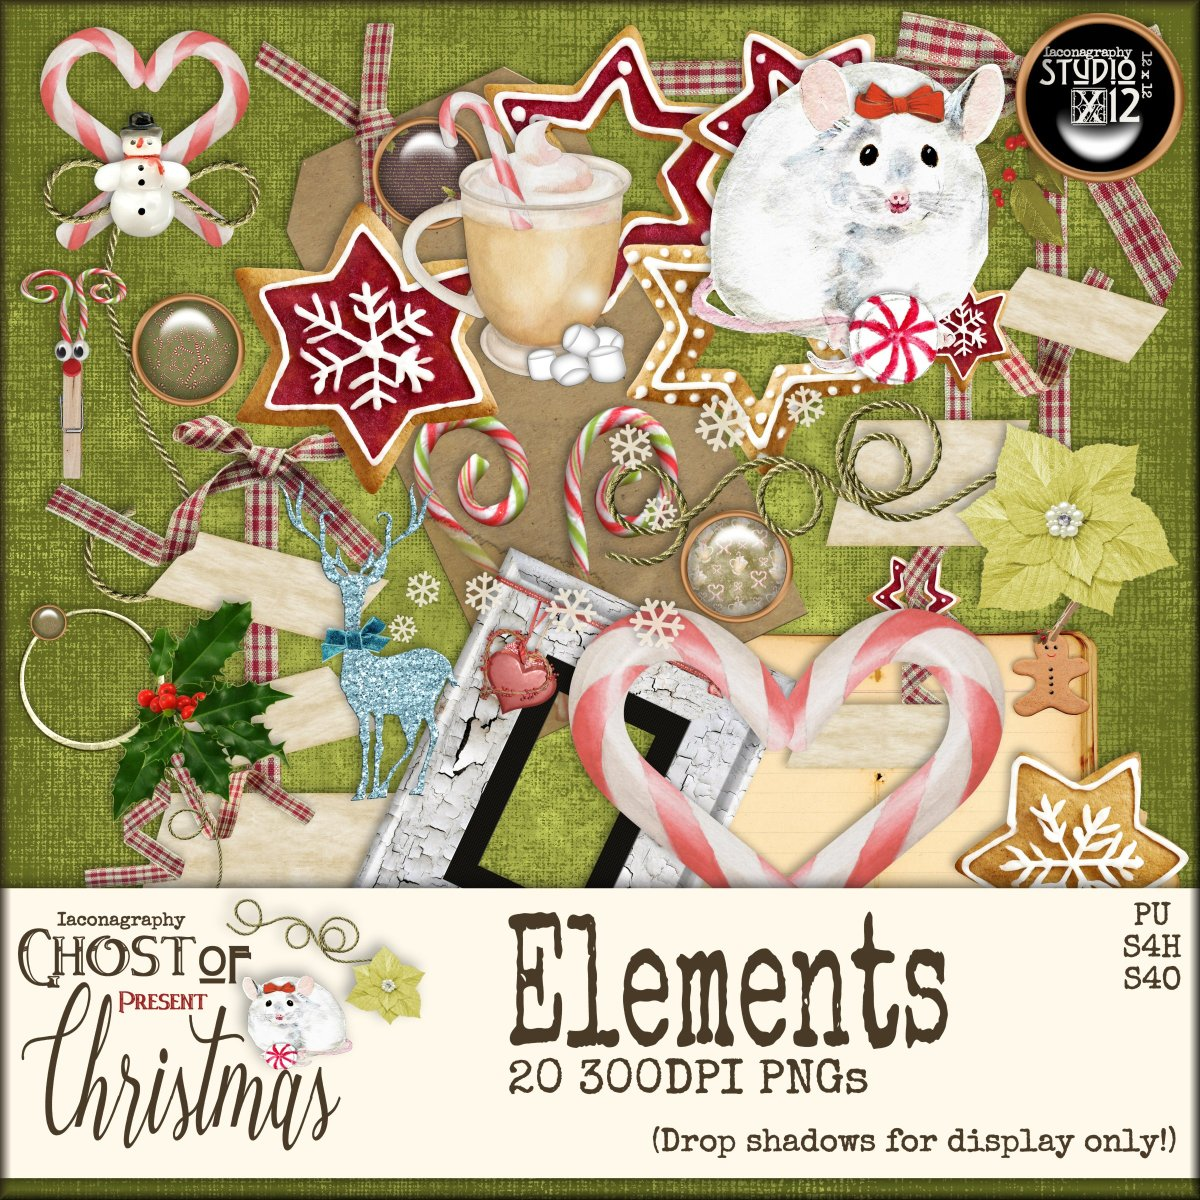 Ghost of Christmas Present Elements (Gathering, 12/2016) – Iaconagraphy